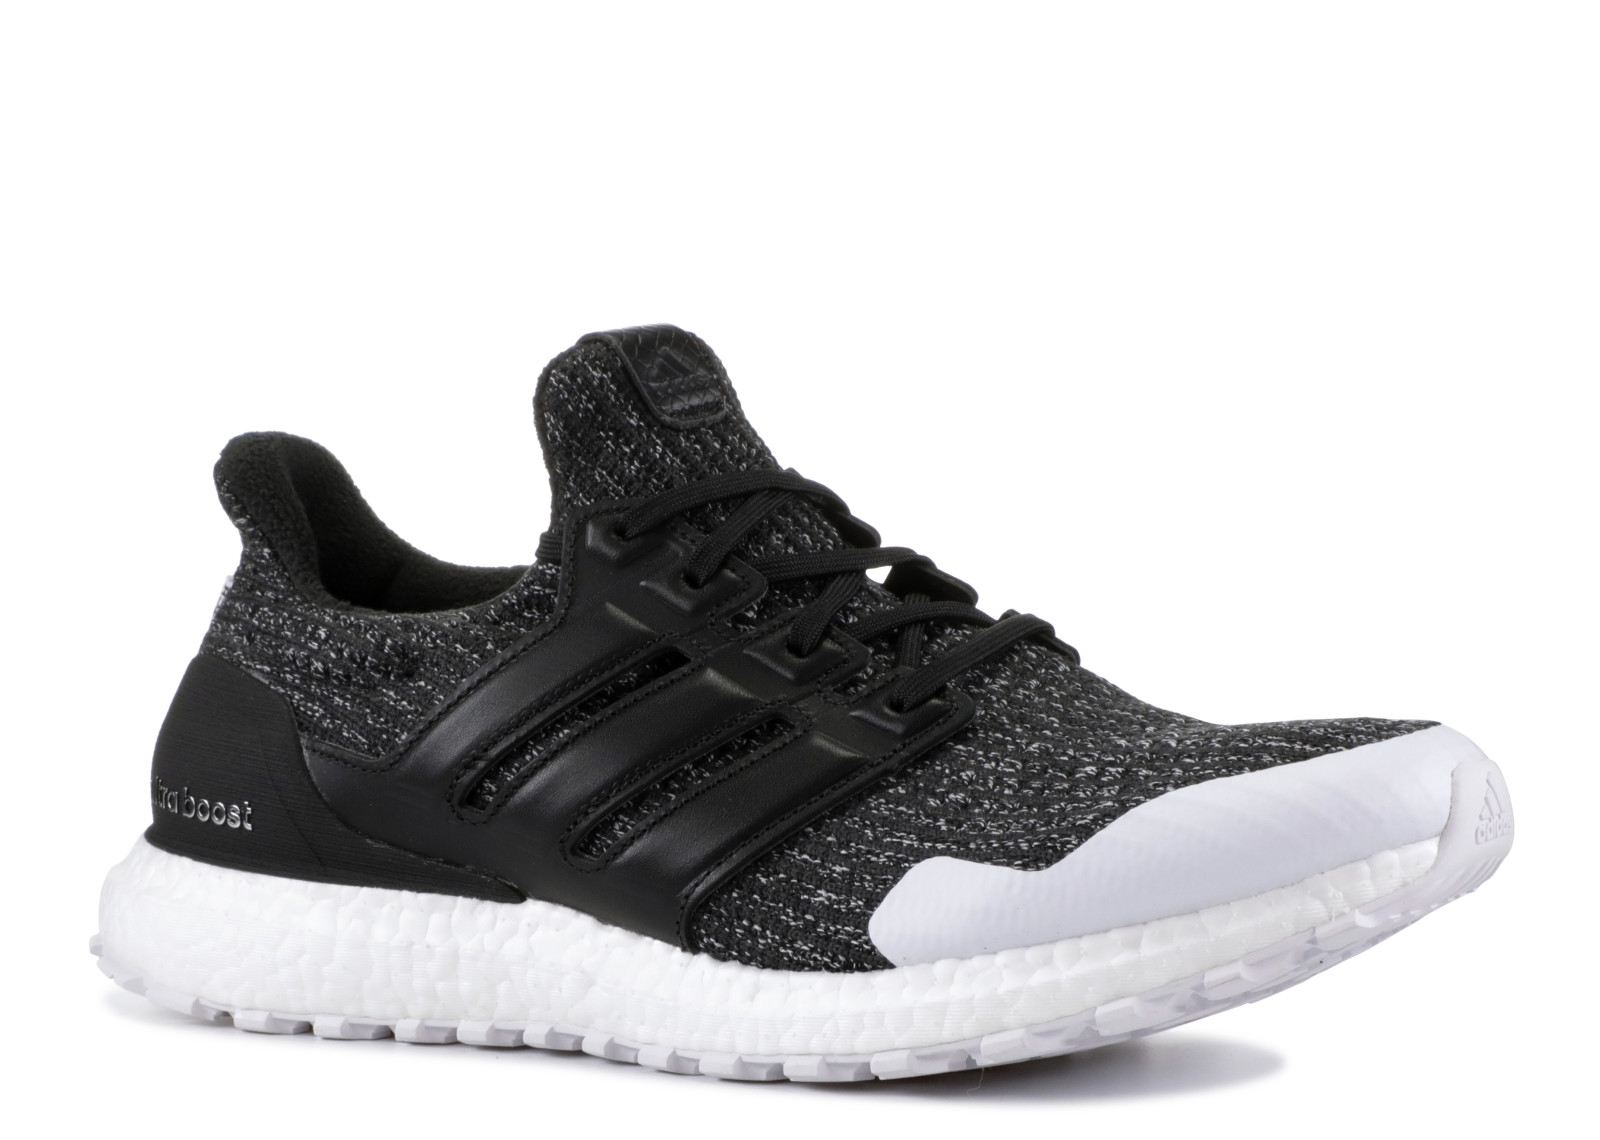 7a310c1a26281 adidas Ultra Boost 4.0 Game of Thrones Nights Watch - 1